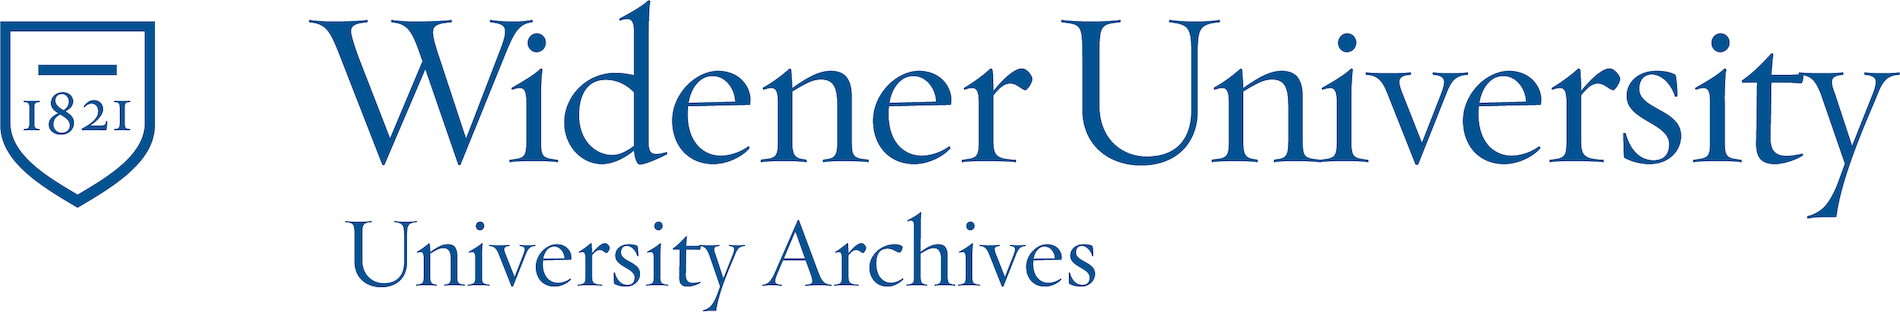 Widener University Archives